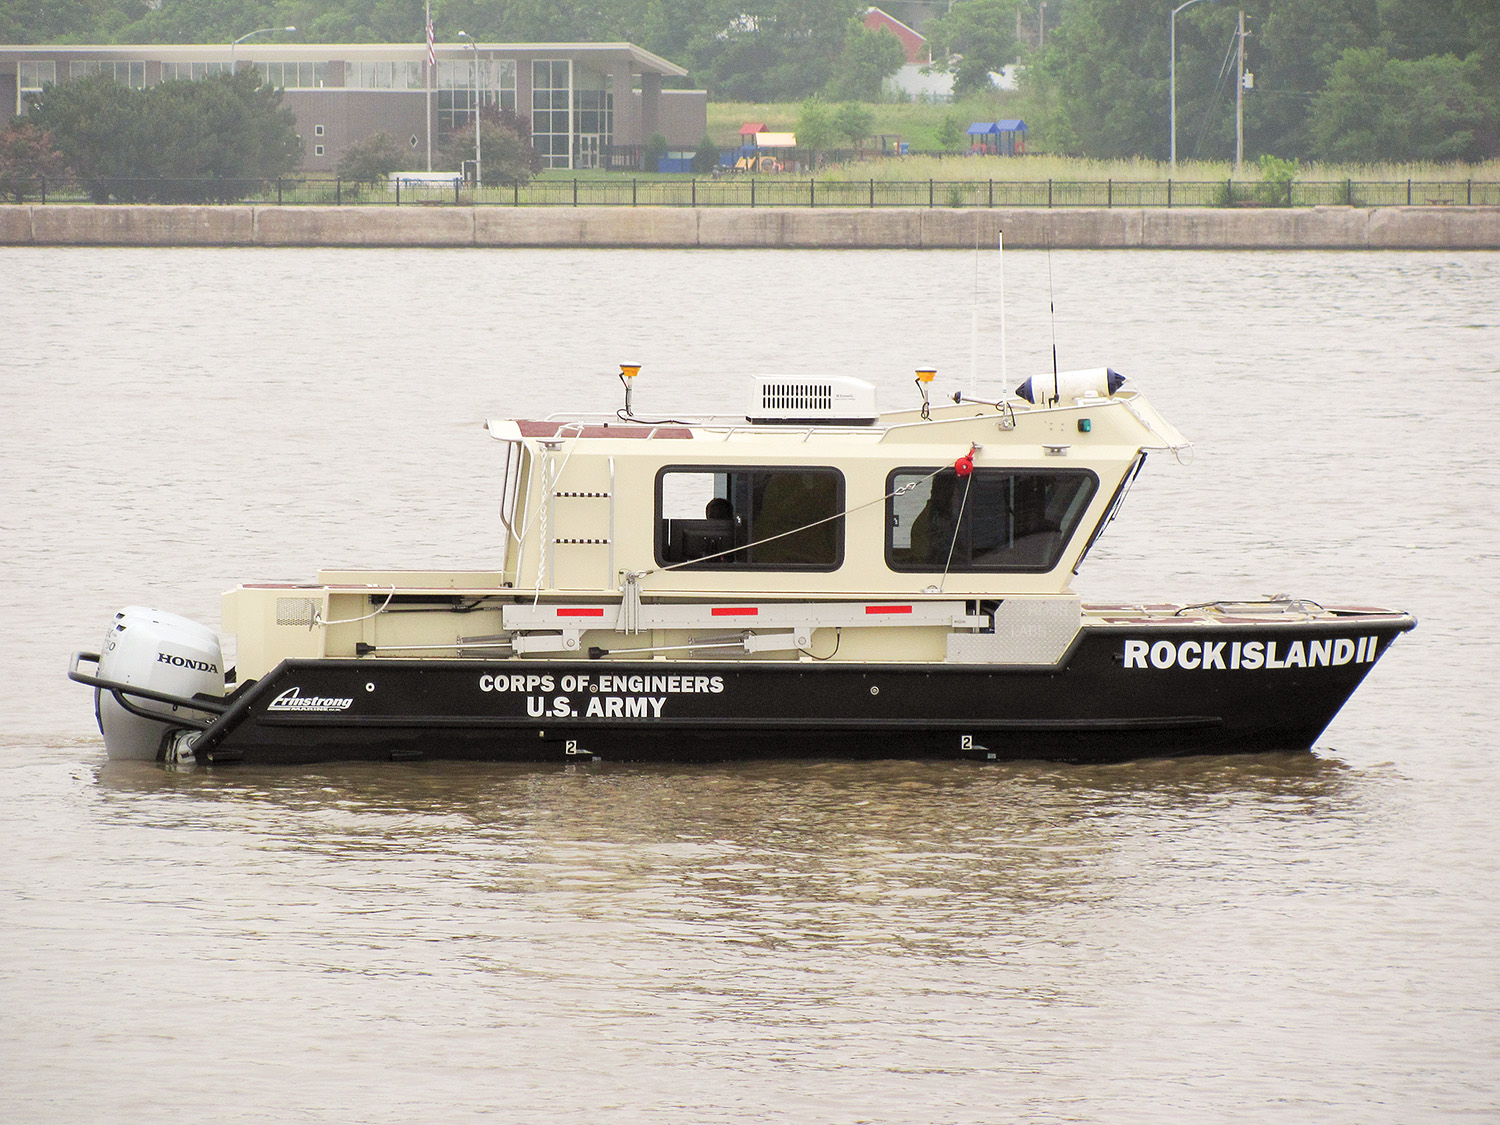 The SV Dubuque under way in the Mississippi River near the Rock Island District headquarters on the morning of June 12. The new hydrographic survey vessel is beginning its life on the river by performing condition surveys in Pools 15, 14 and 13. Rock Island II is a temporary name during the manufacturing process. Corps Headquarters approved Dubuque as the vessel's permanent name following its arrival at the district.